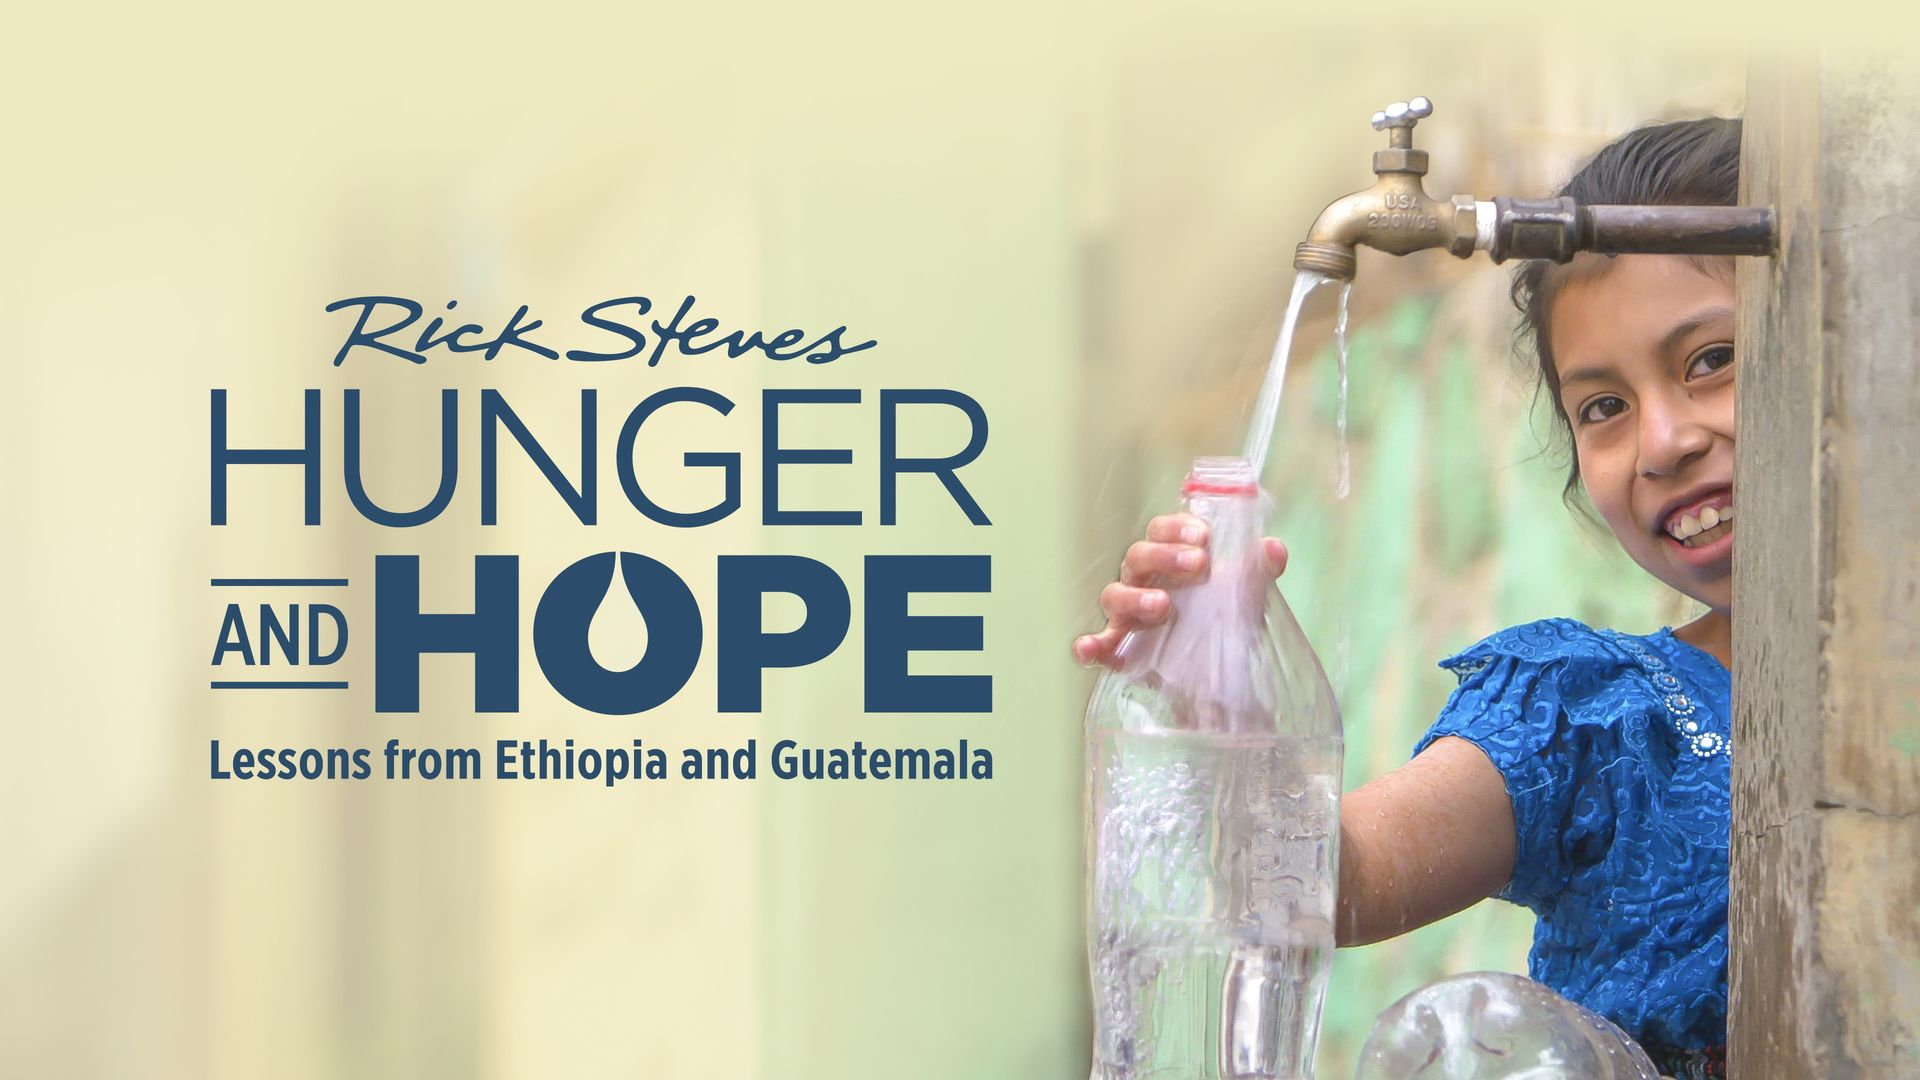 hunger-and-hope-title.jpg - 168.65 kB